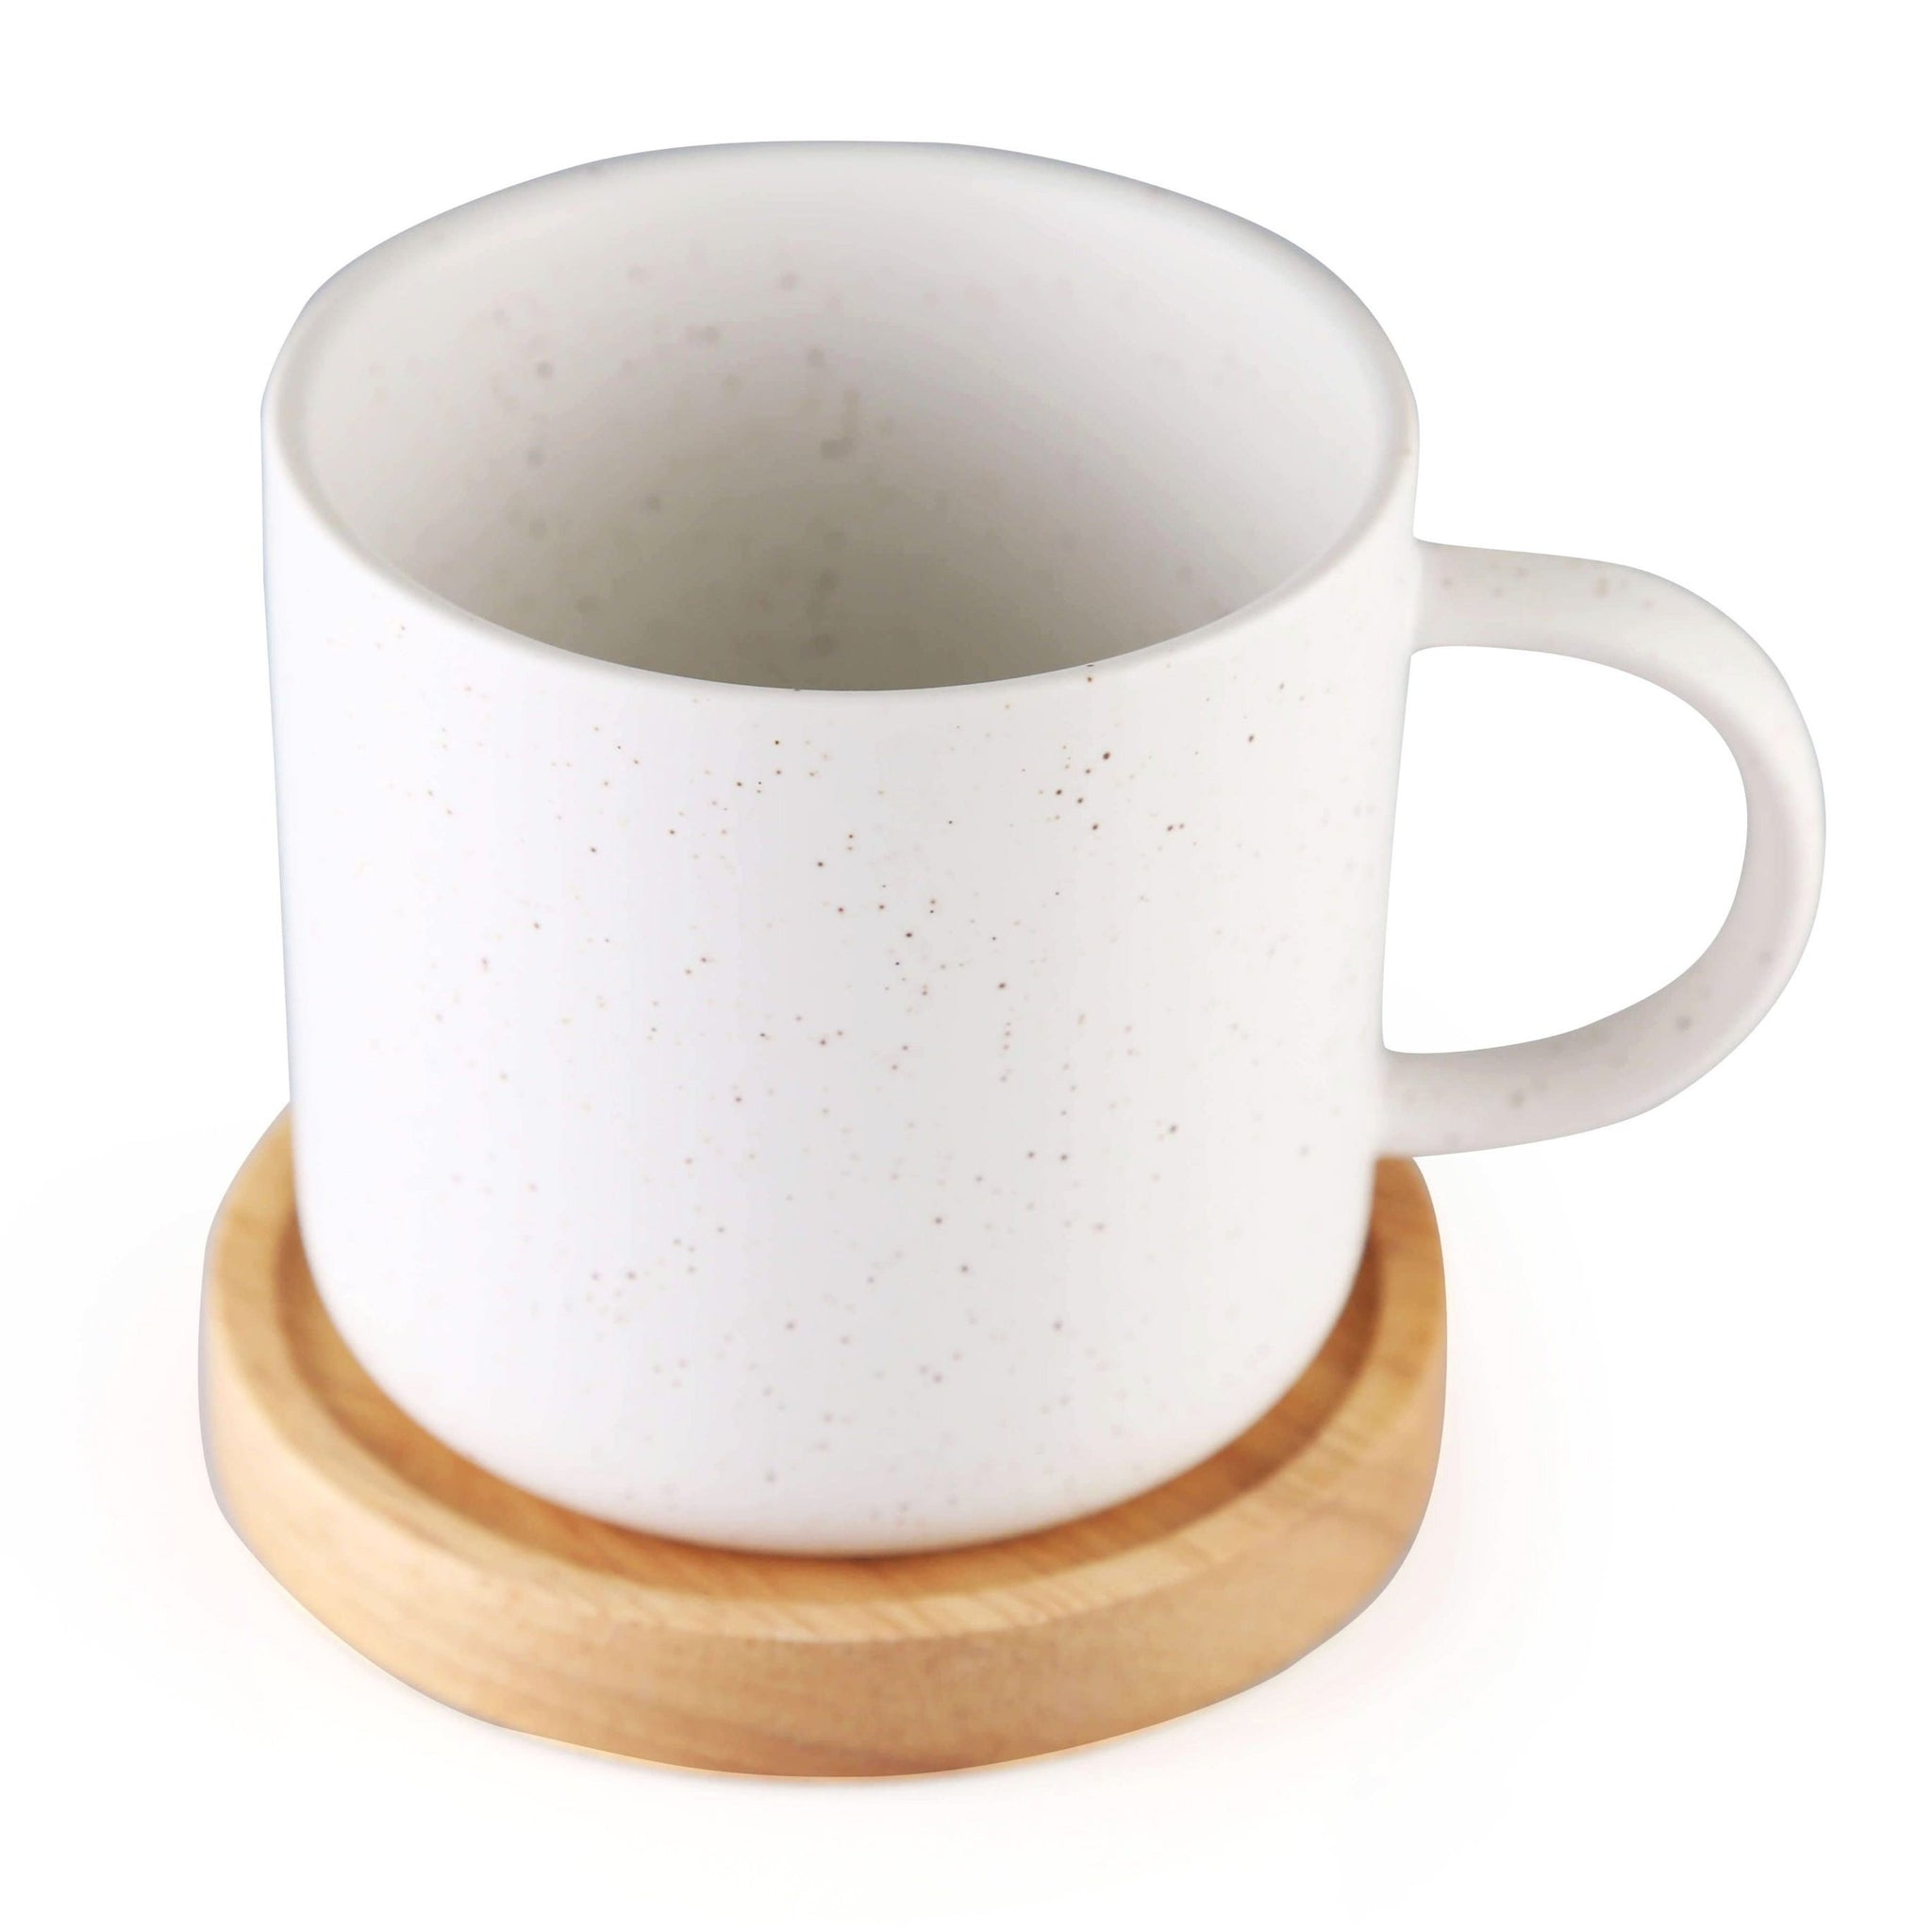 CHICERAMIC Ceramic Stone cup with wooden coaster- White